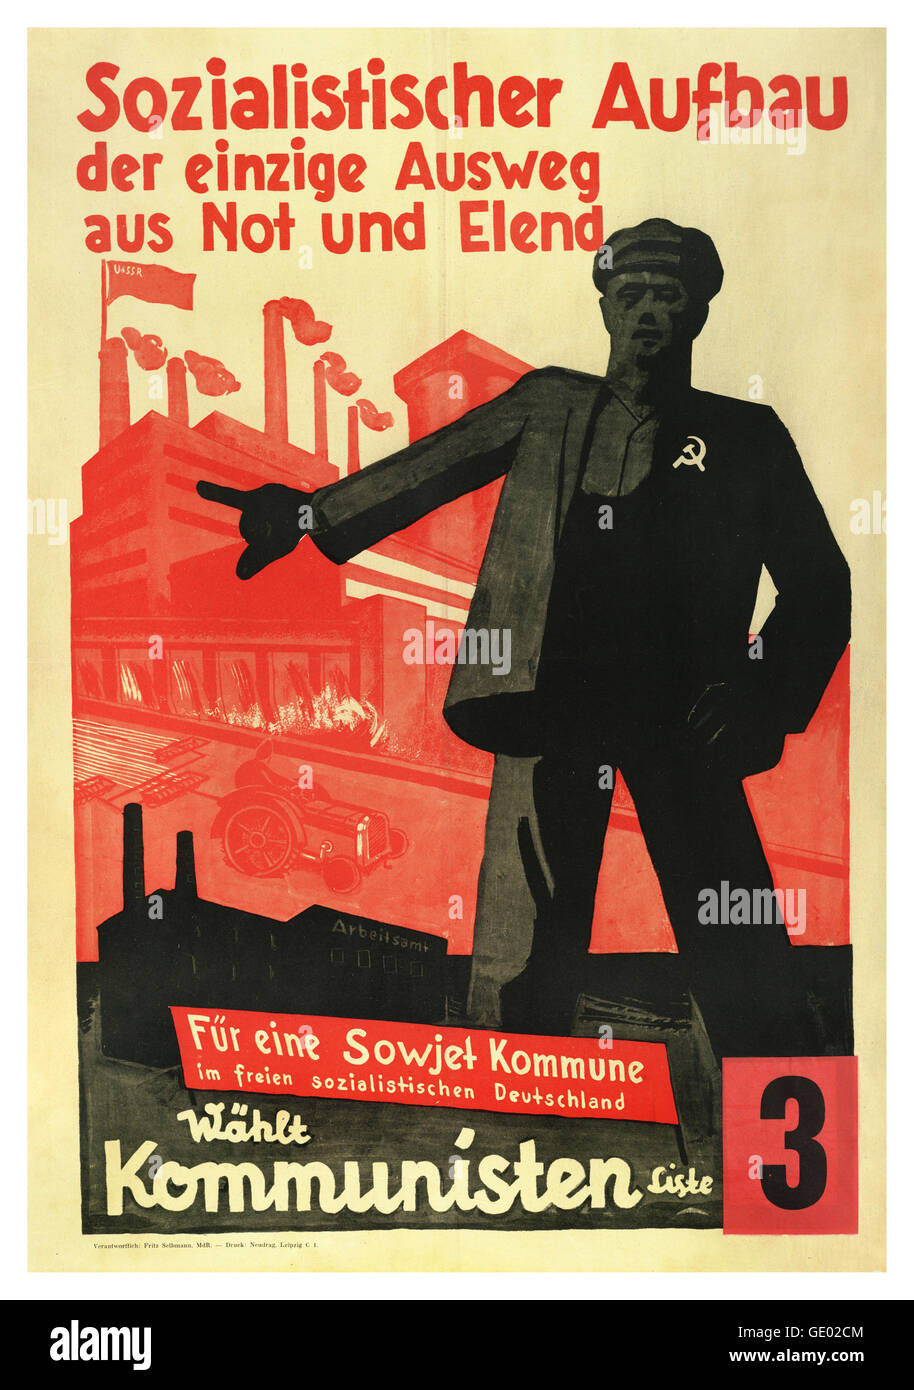 WW2 1930's Nazi Germany anti-communist propaganda poster series saying communism brings misery - Stock Image